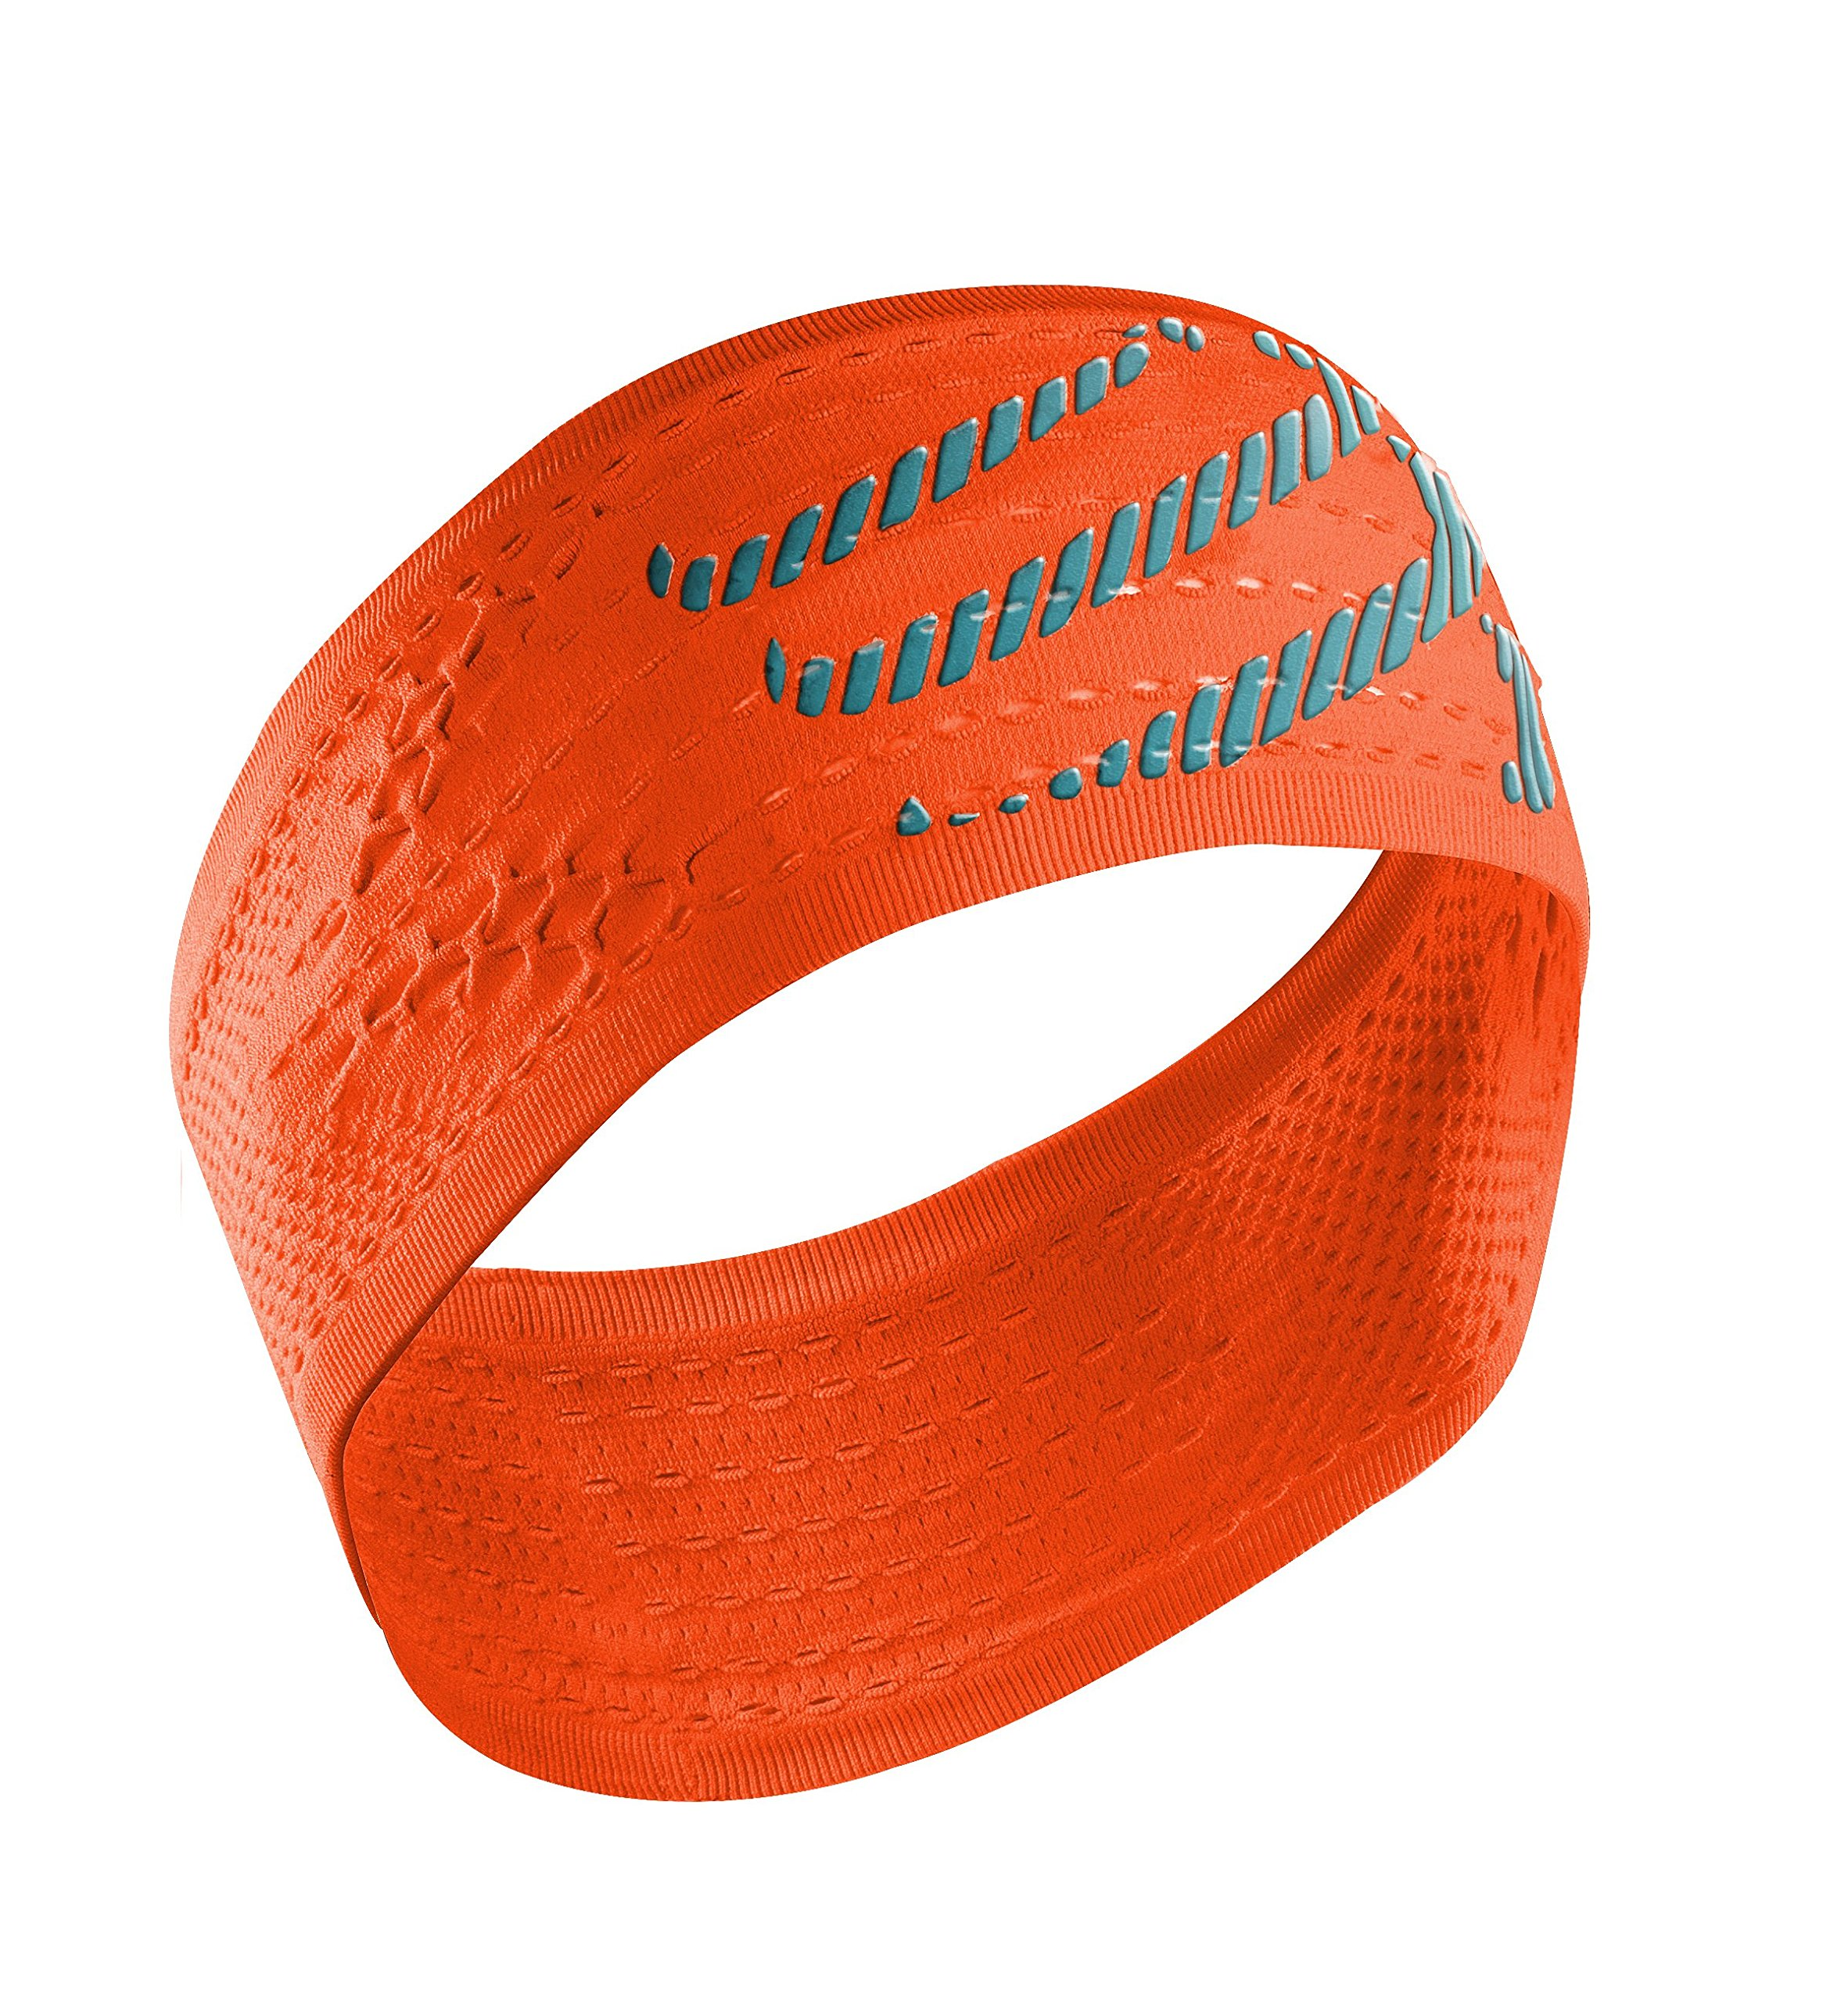 Compressport Headband On/Off Cinta, Unisex, Naranja flúor, Talla Única product image